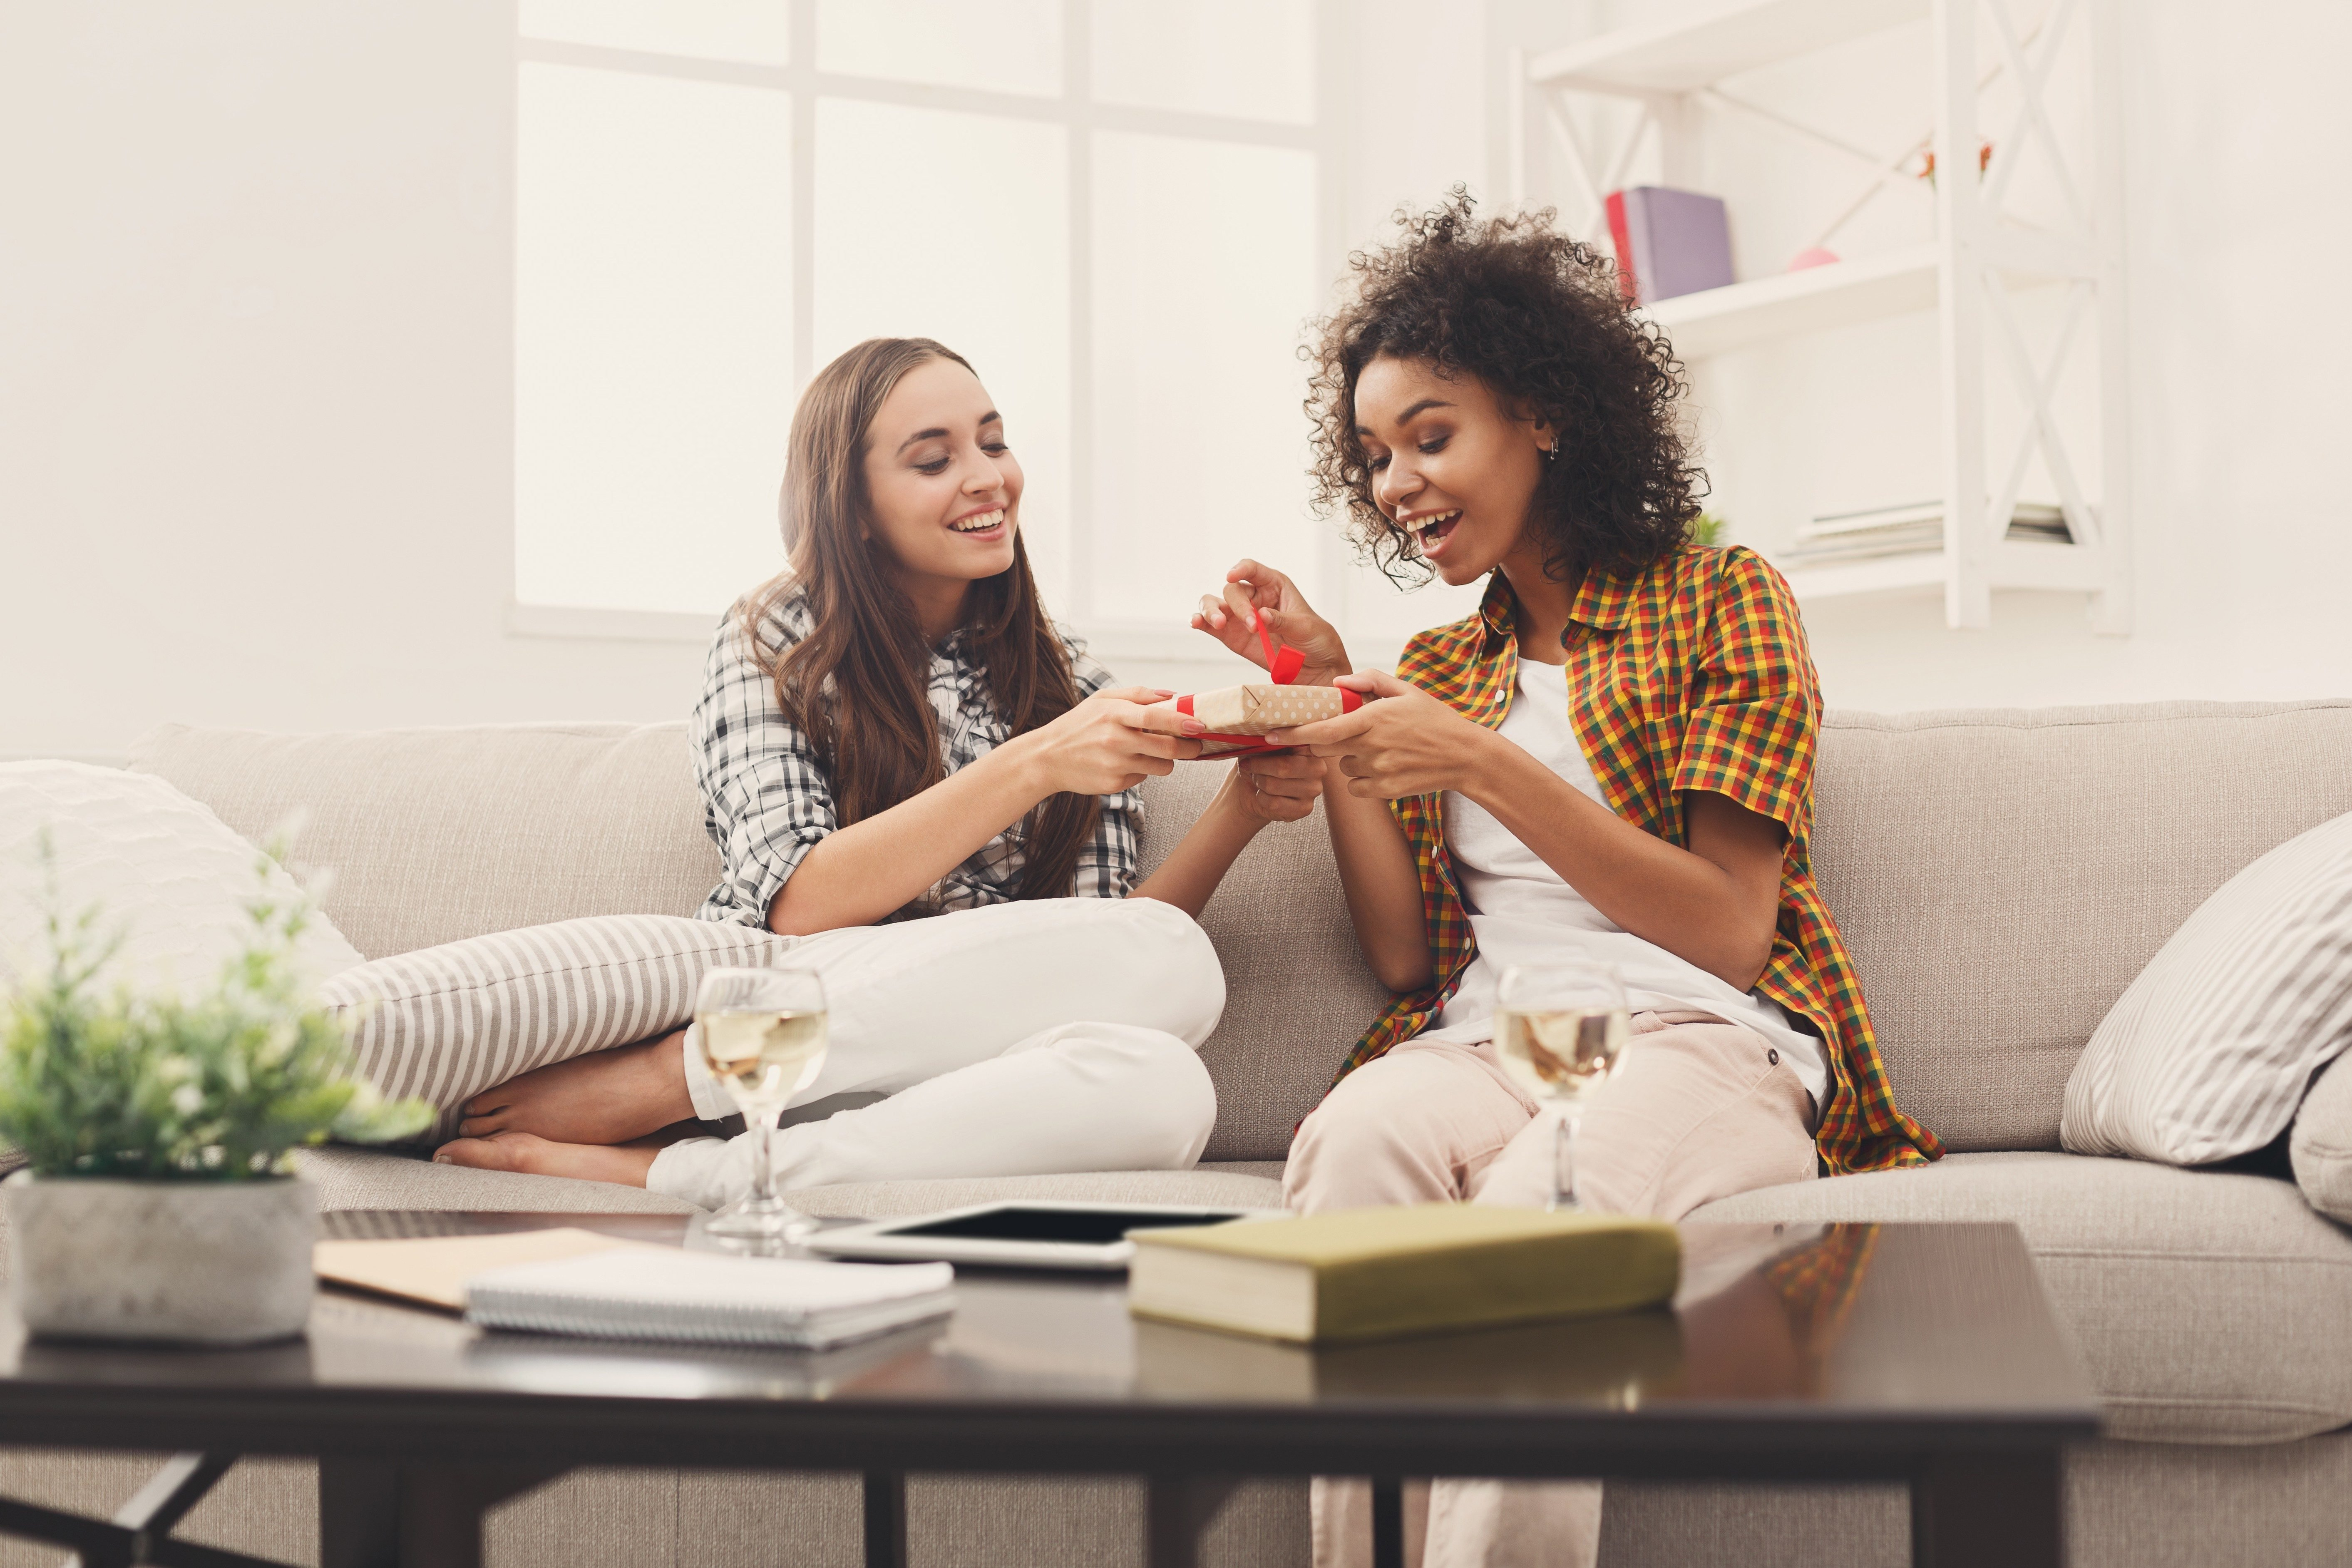 Happy girls exchanging gifts. Excited woman getting present from her friend. Birthday, holidays, celebration and female friendship concept, copy space